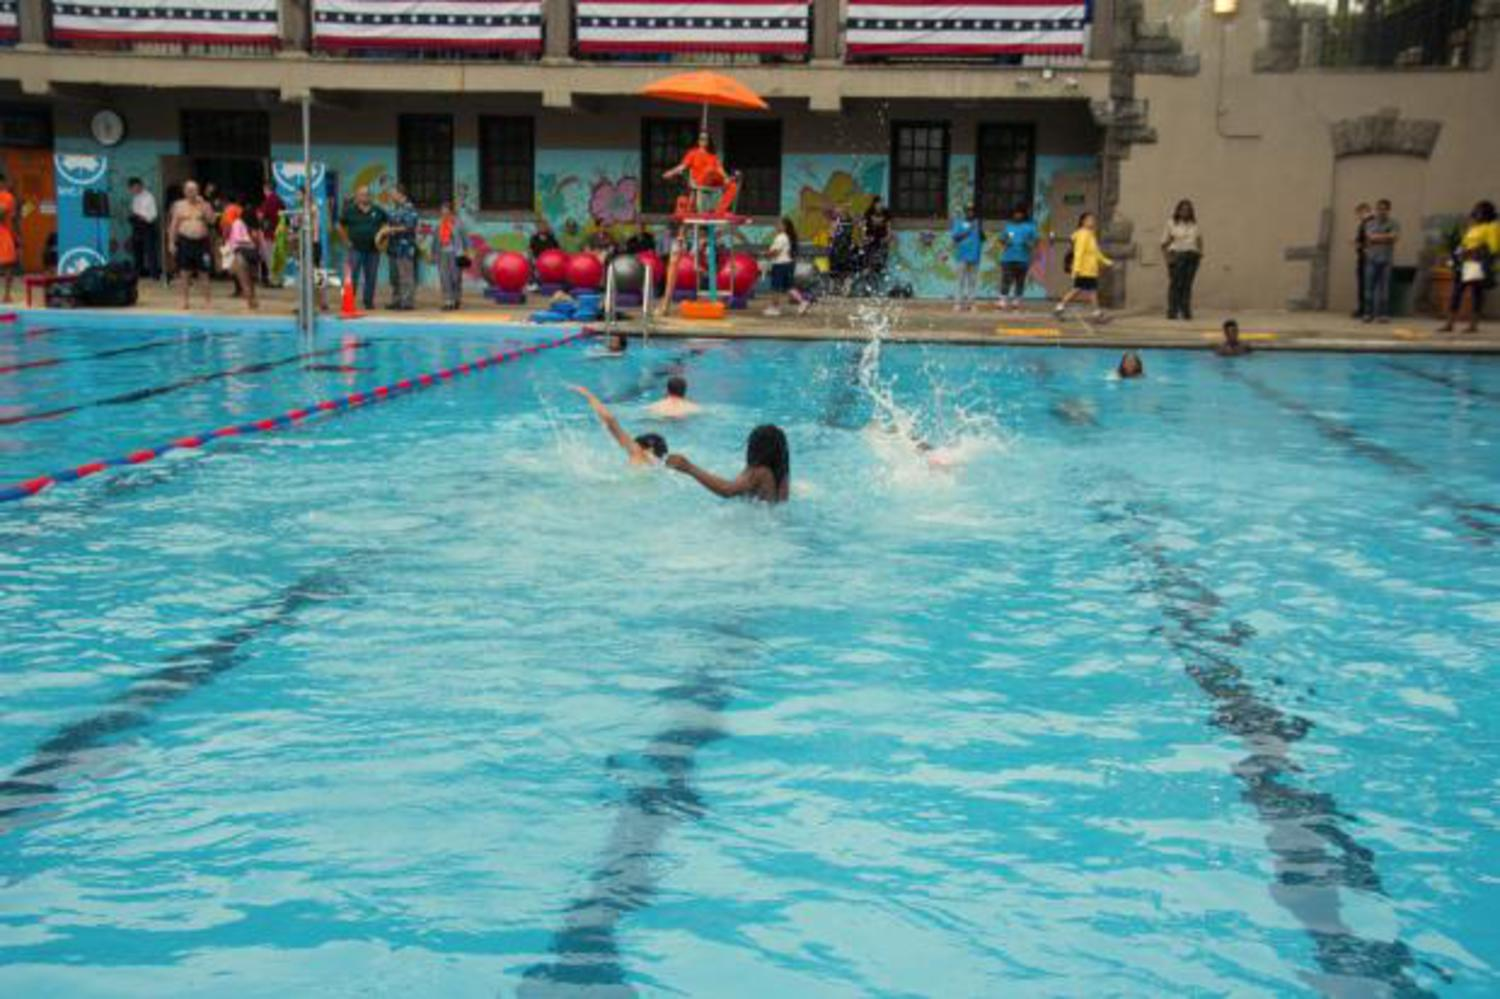 The city's outdoor public pools will be open from Wednesday, June 29, 2016, to Sept. 11, 2016.